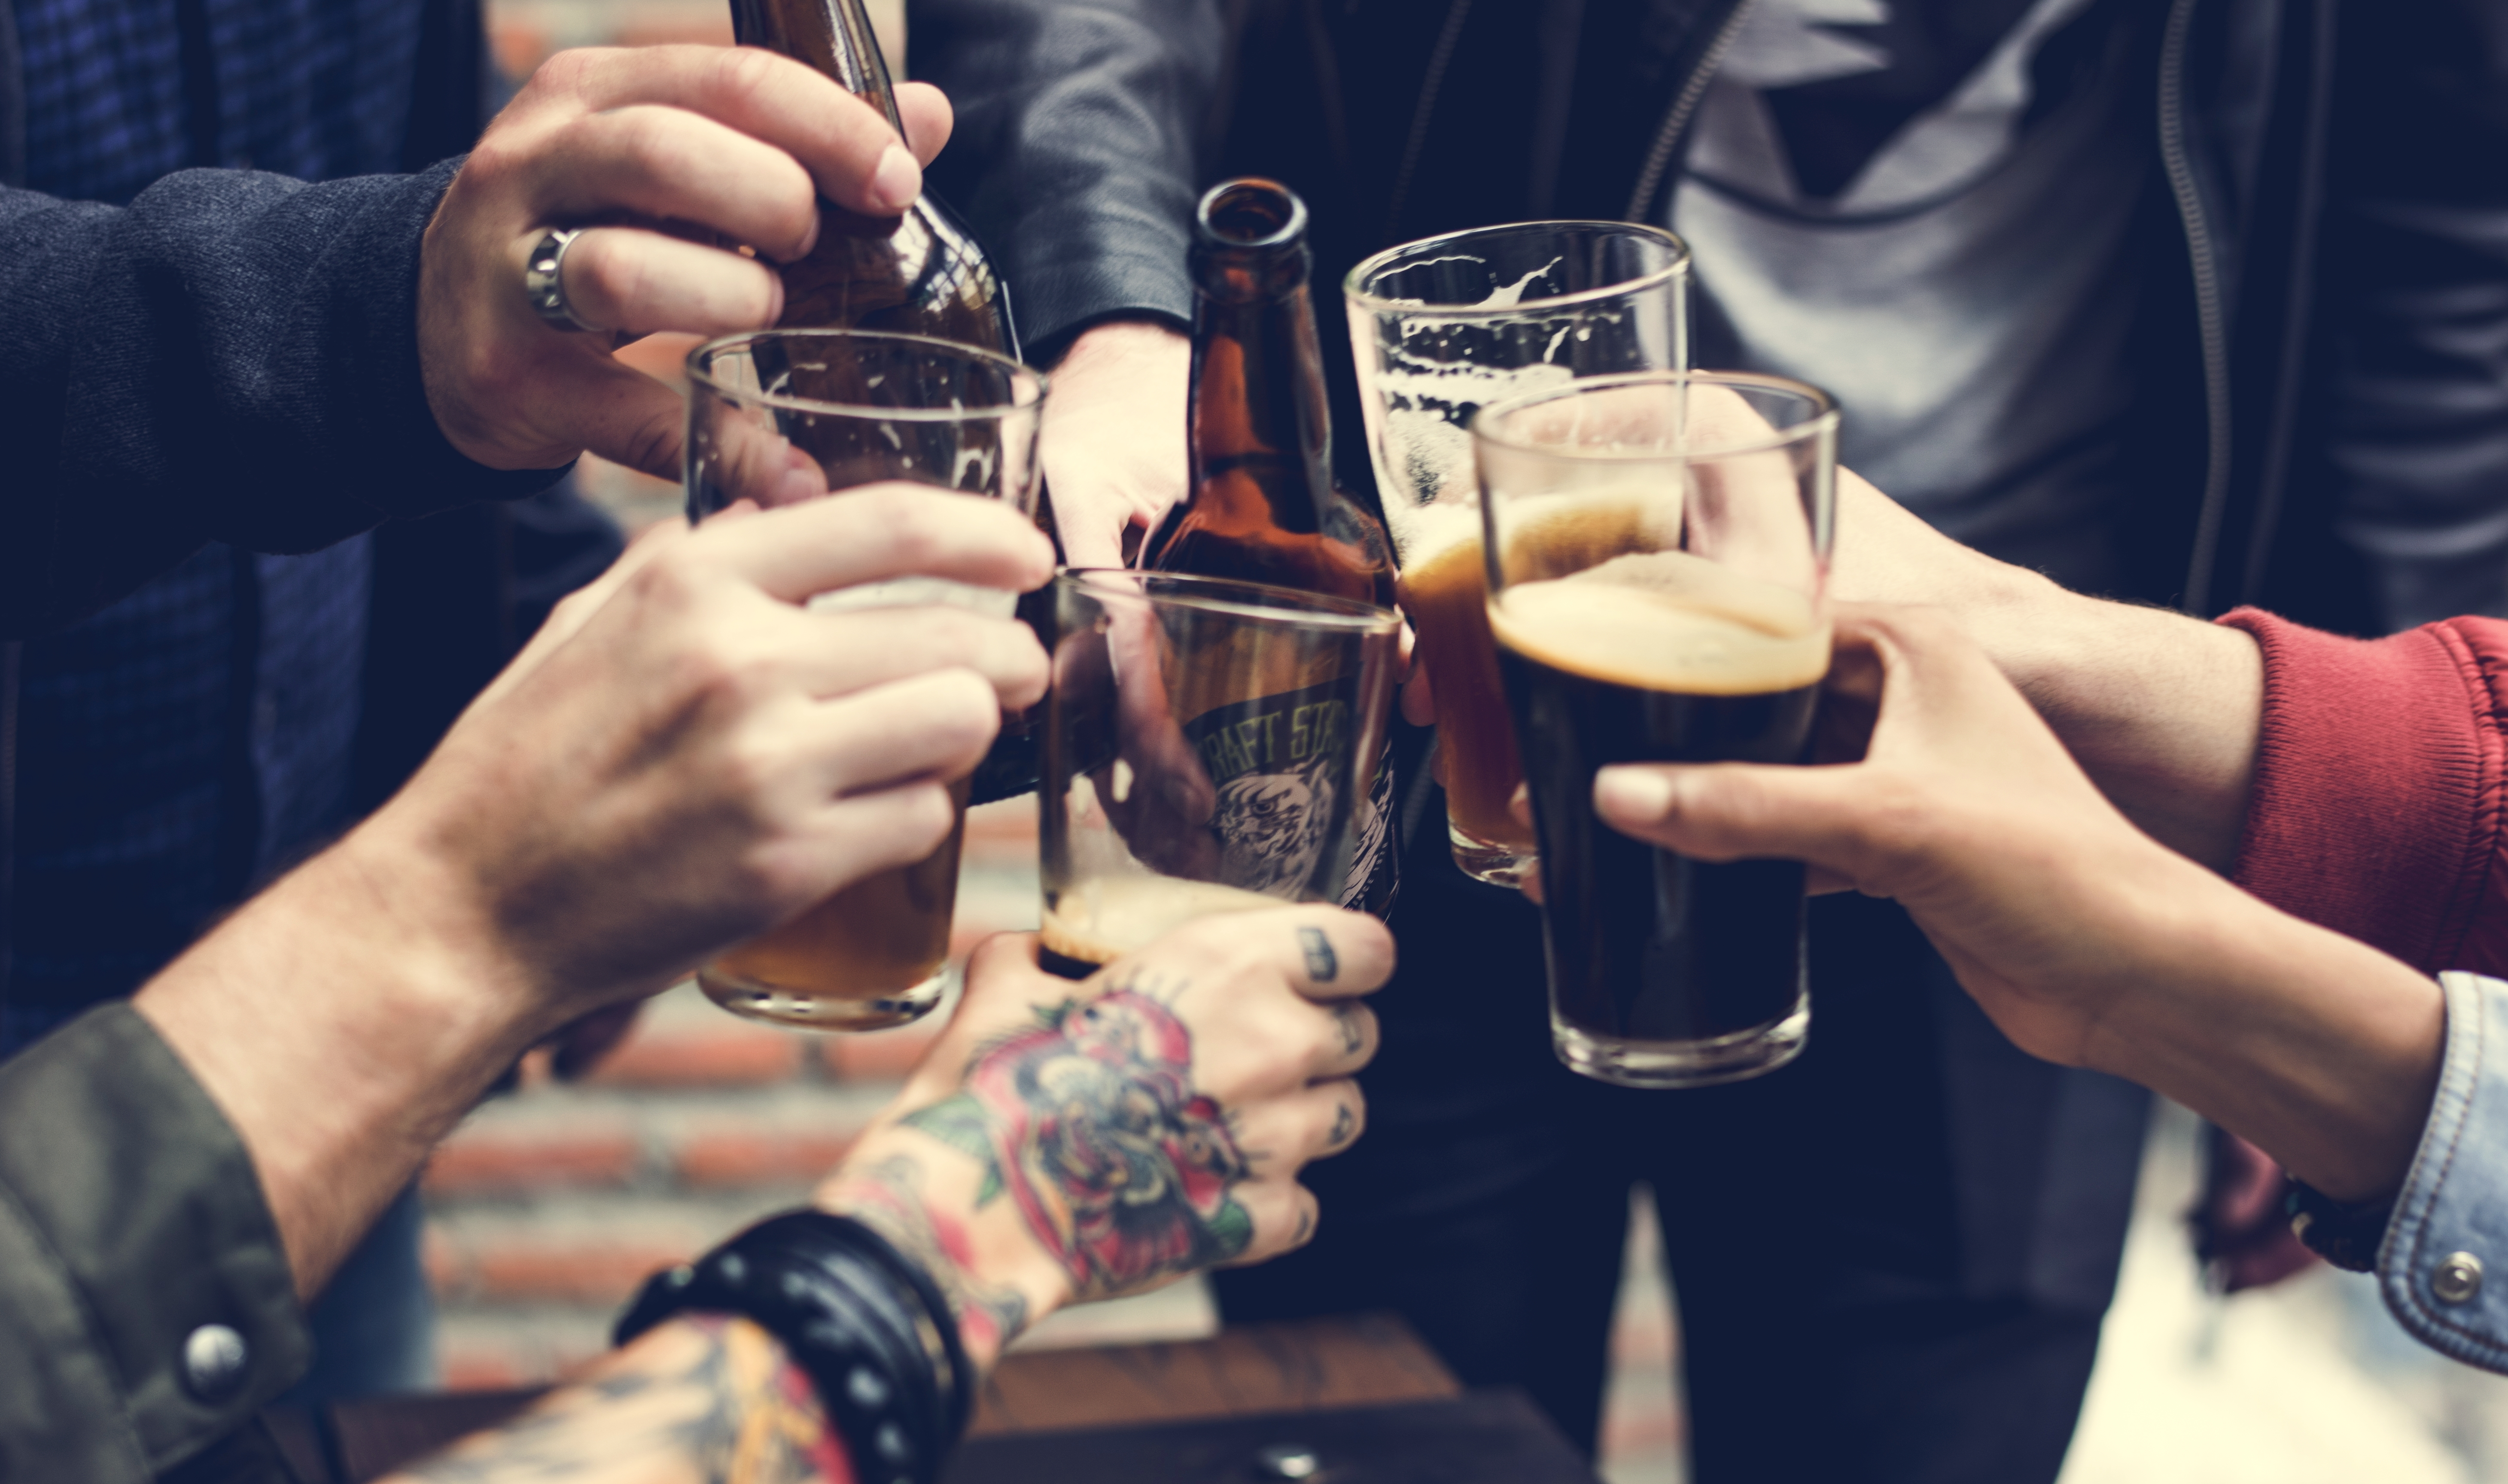 multiple hands holding beers and cheers-ing